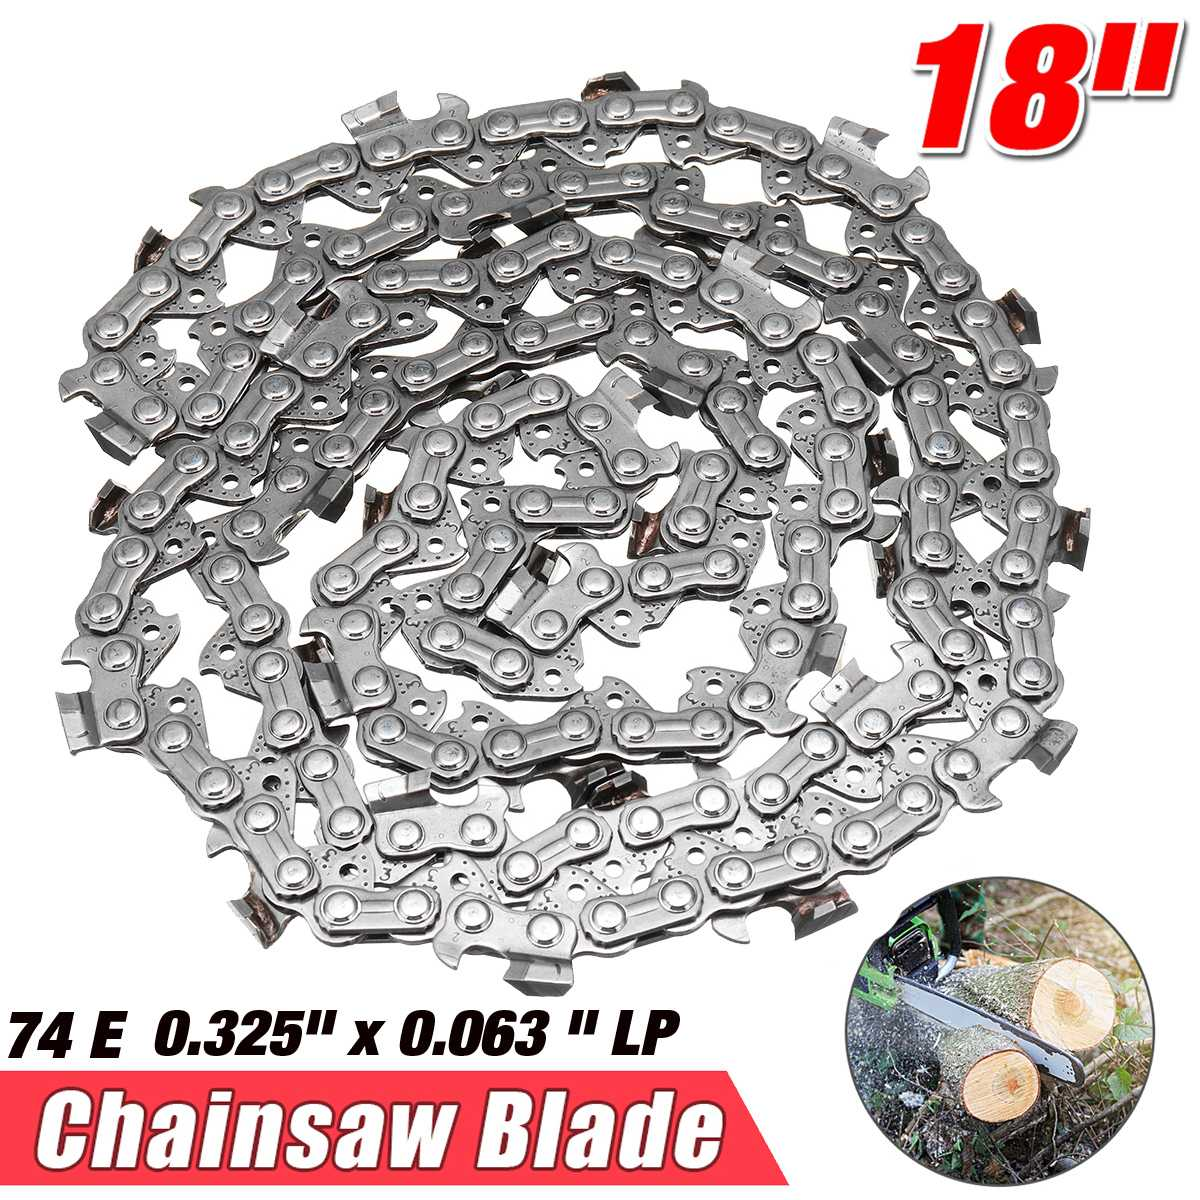 14/18 inch 52DL/74E Garden Chain Saws Alloy Solid Carbide Chainsaw Chain Link Bar 3/8 x 0.050/0.325